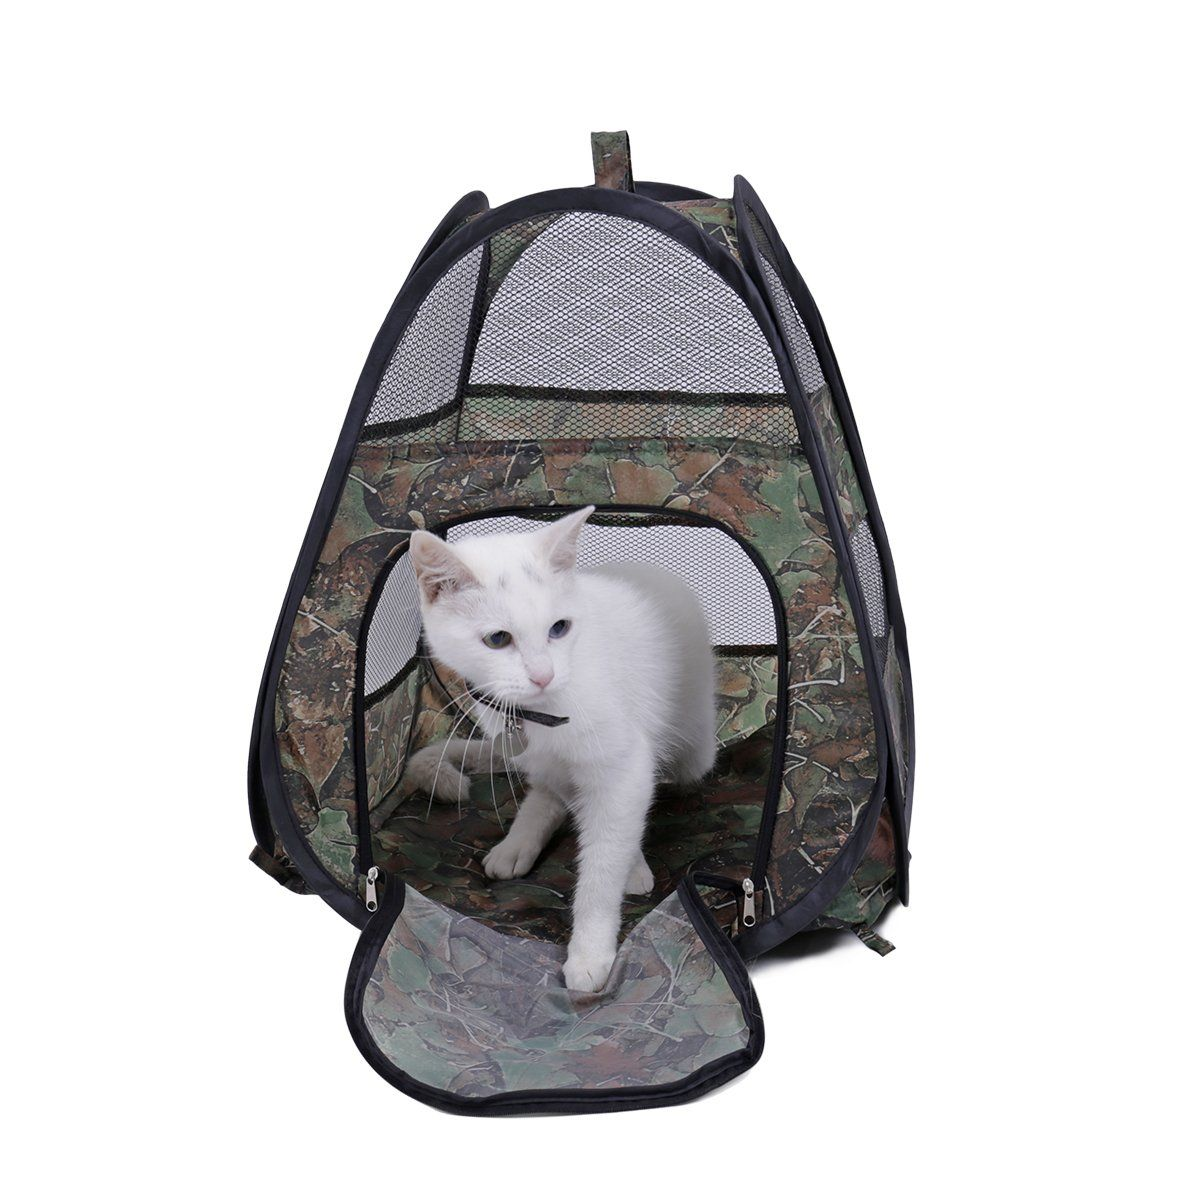 PAWZ Road Pet Cat Bed for Small and Medium Size Animals